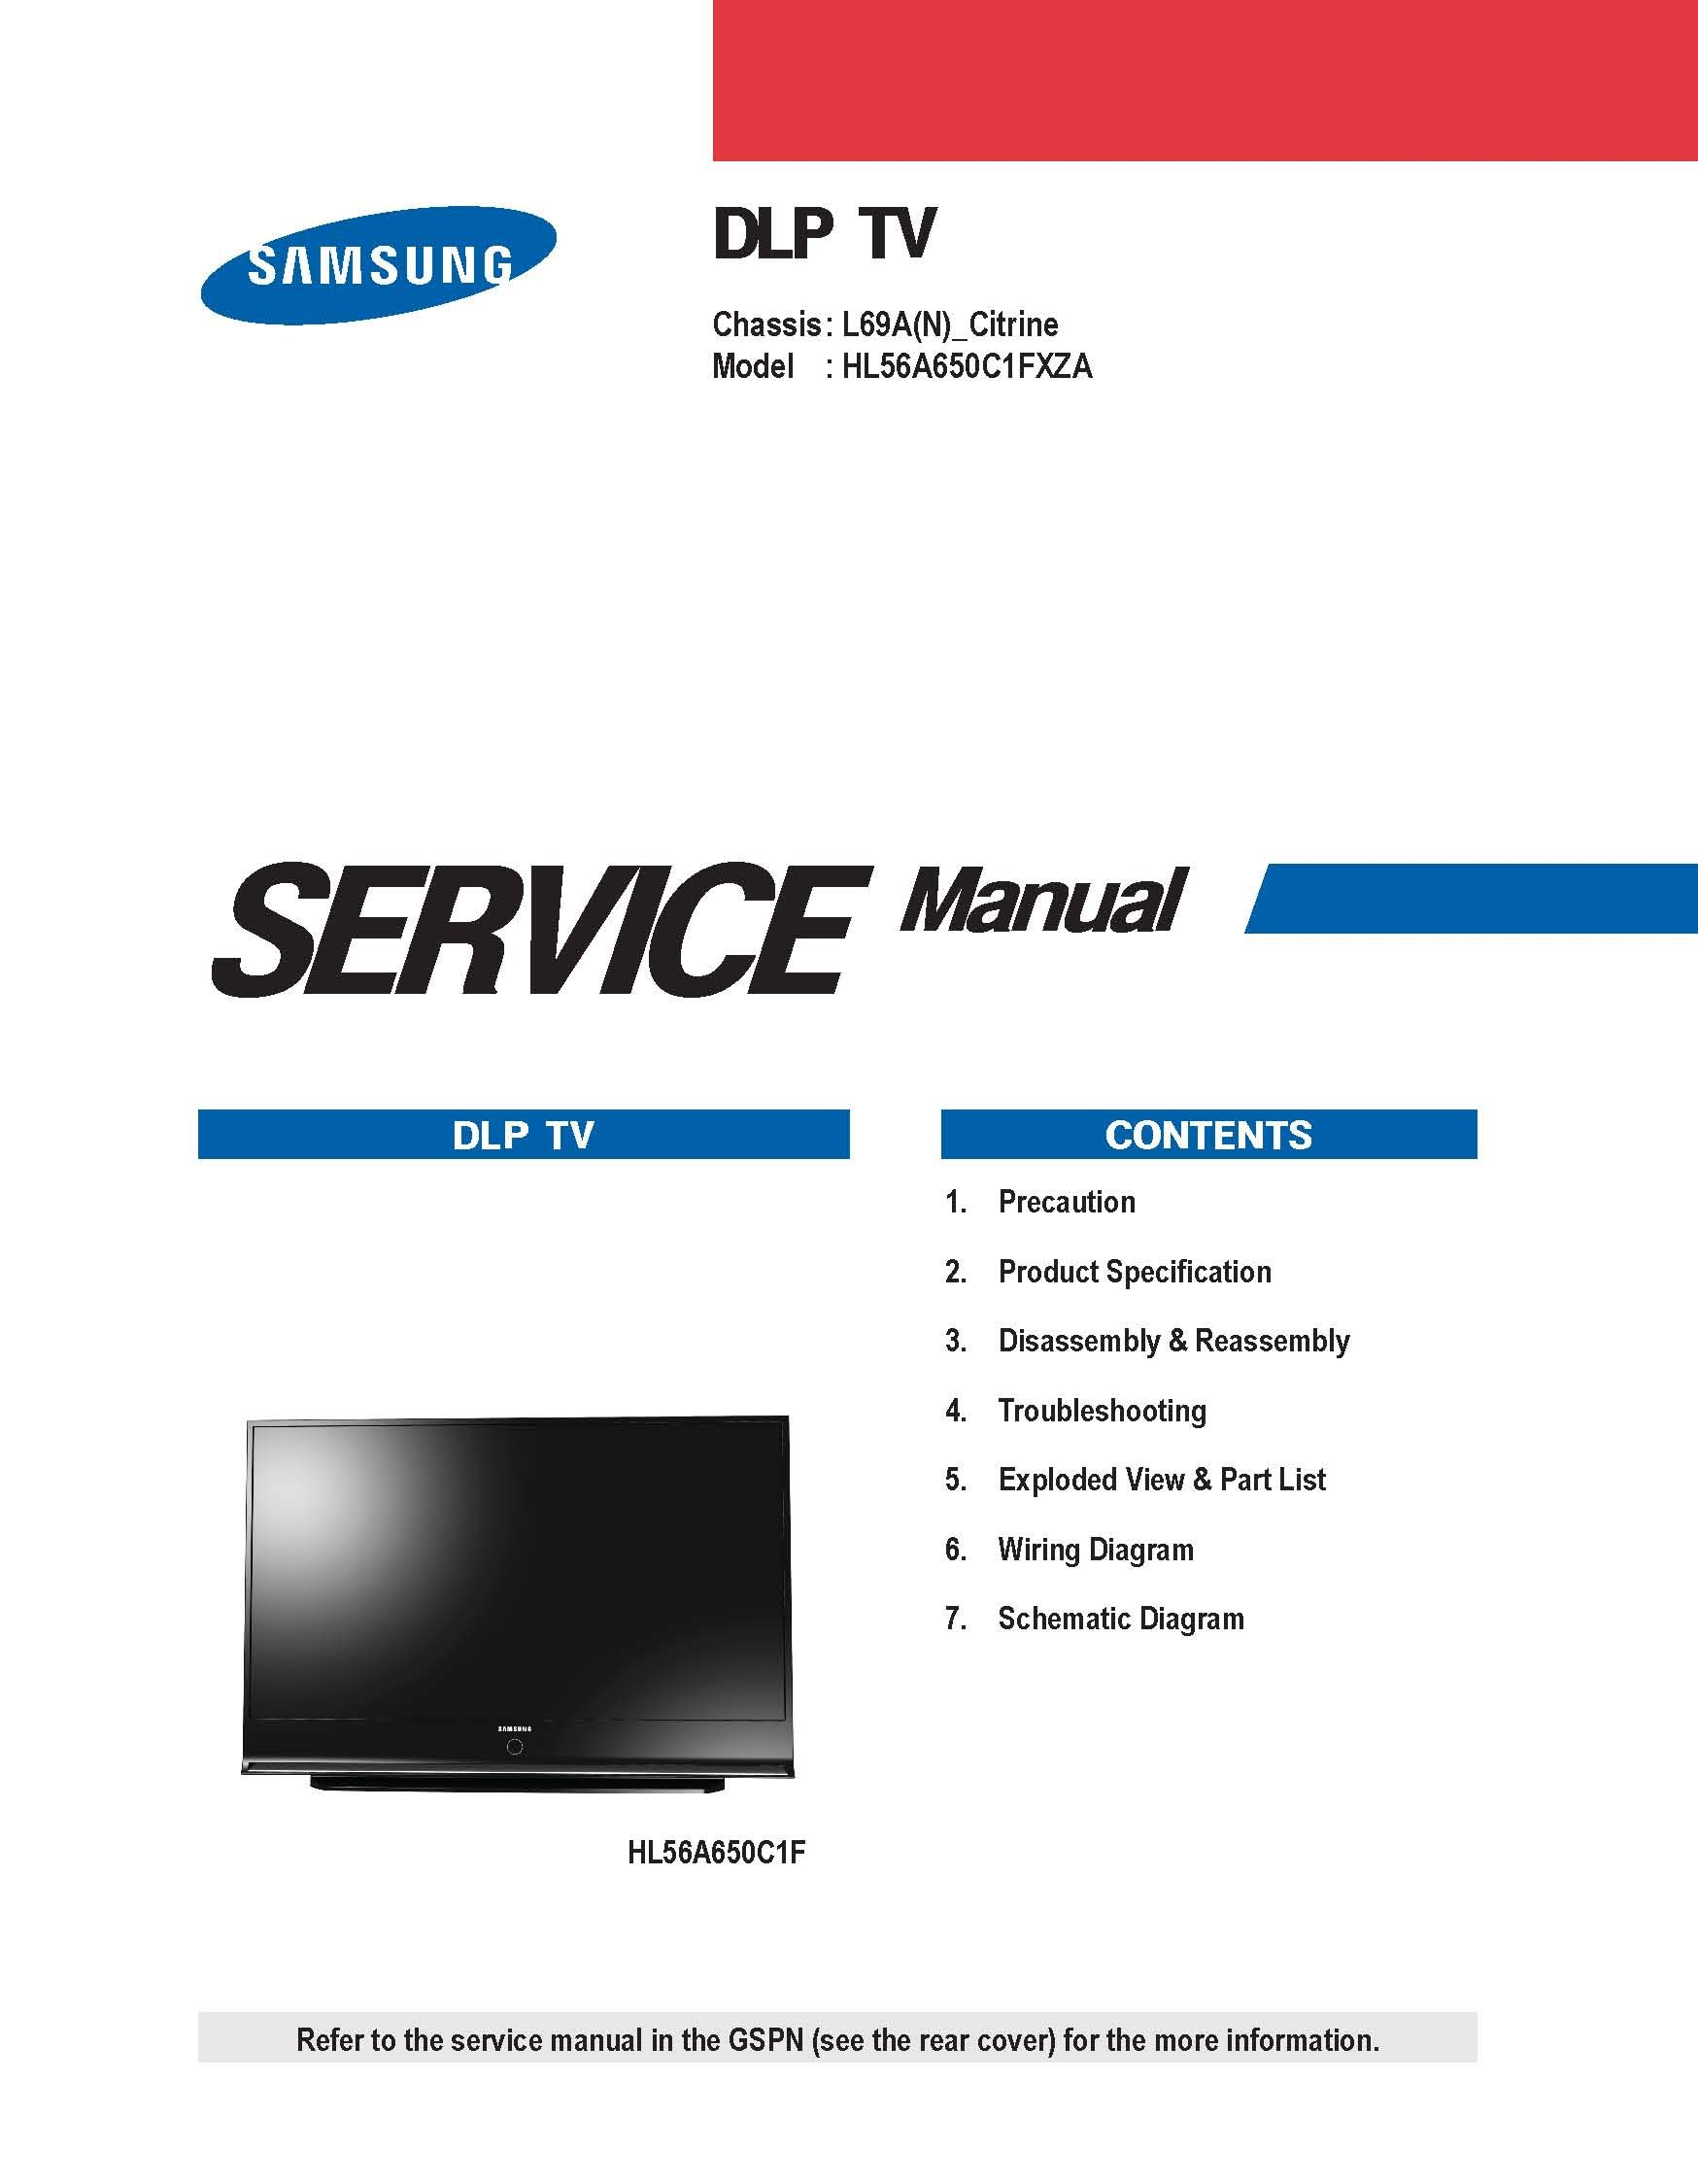 Samsung HL56A650C1FXZA service manual: Samsung: 0912345566502: Amazon.com:  Books